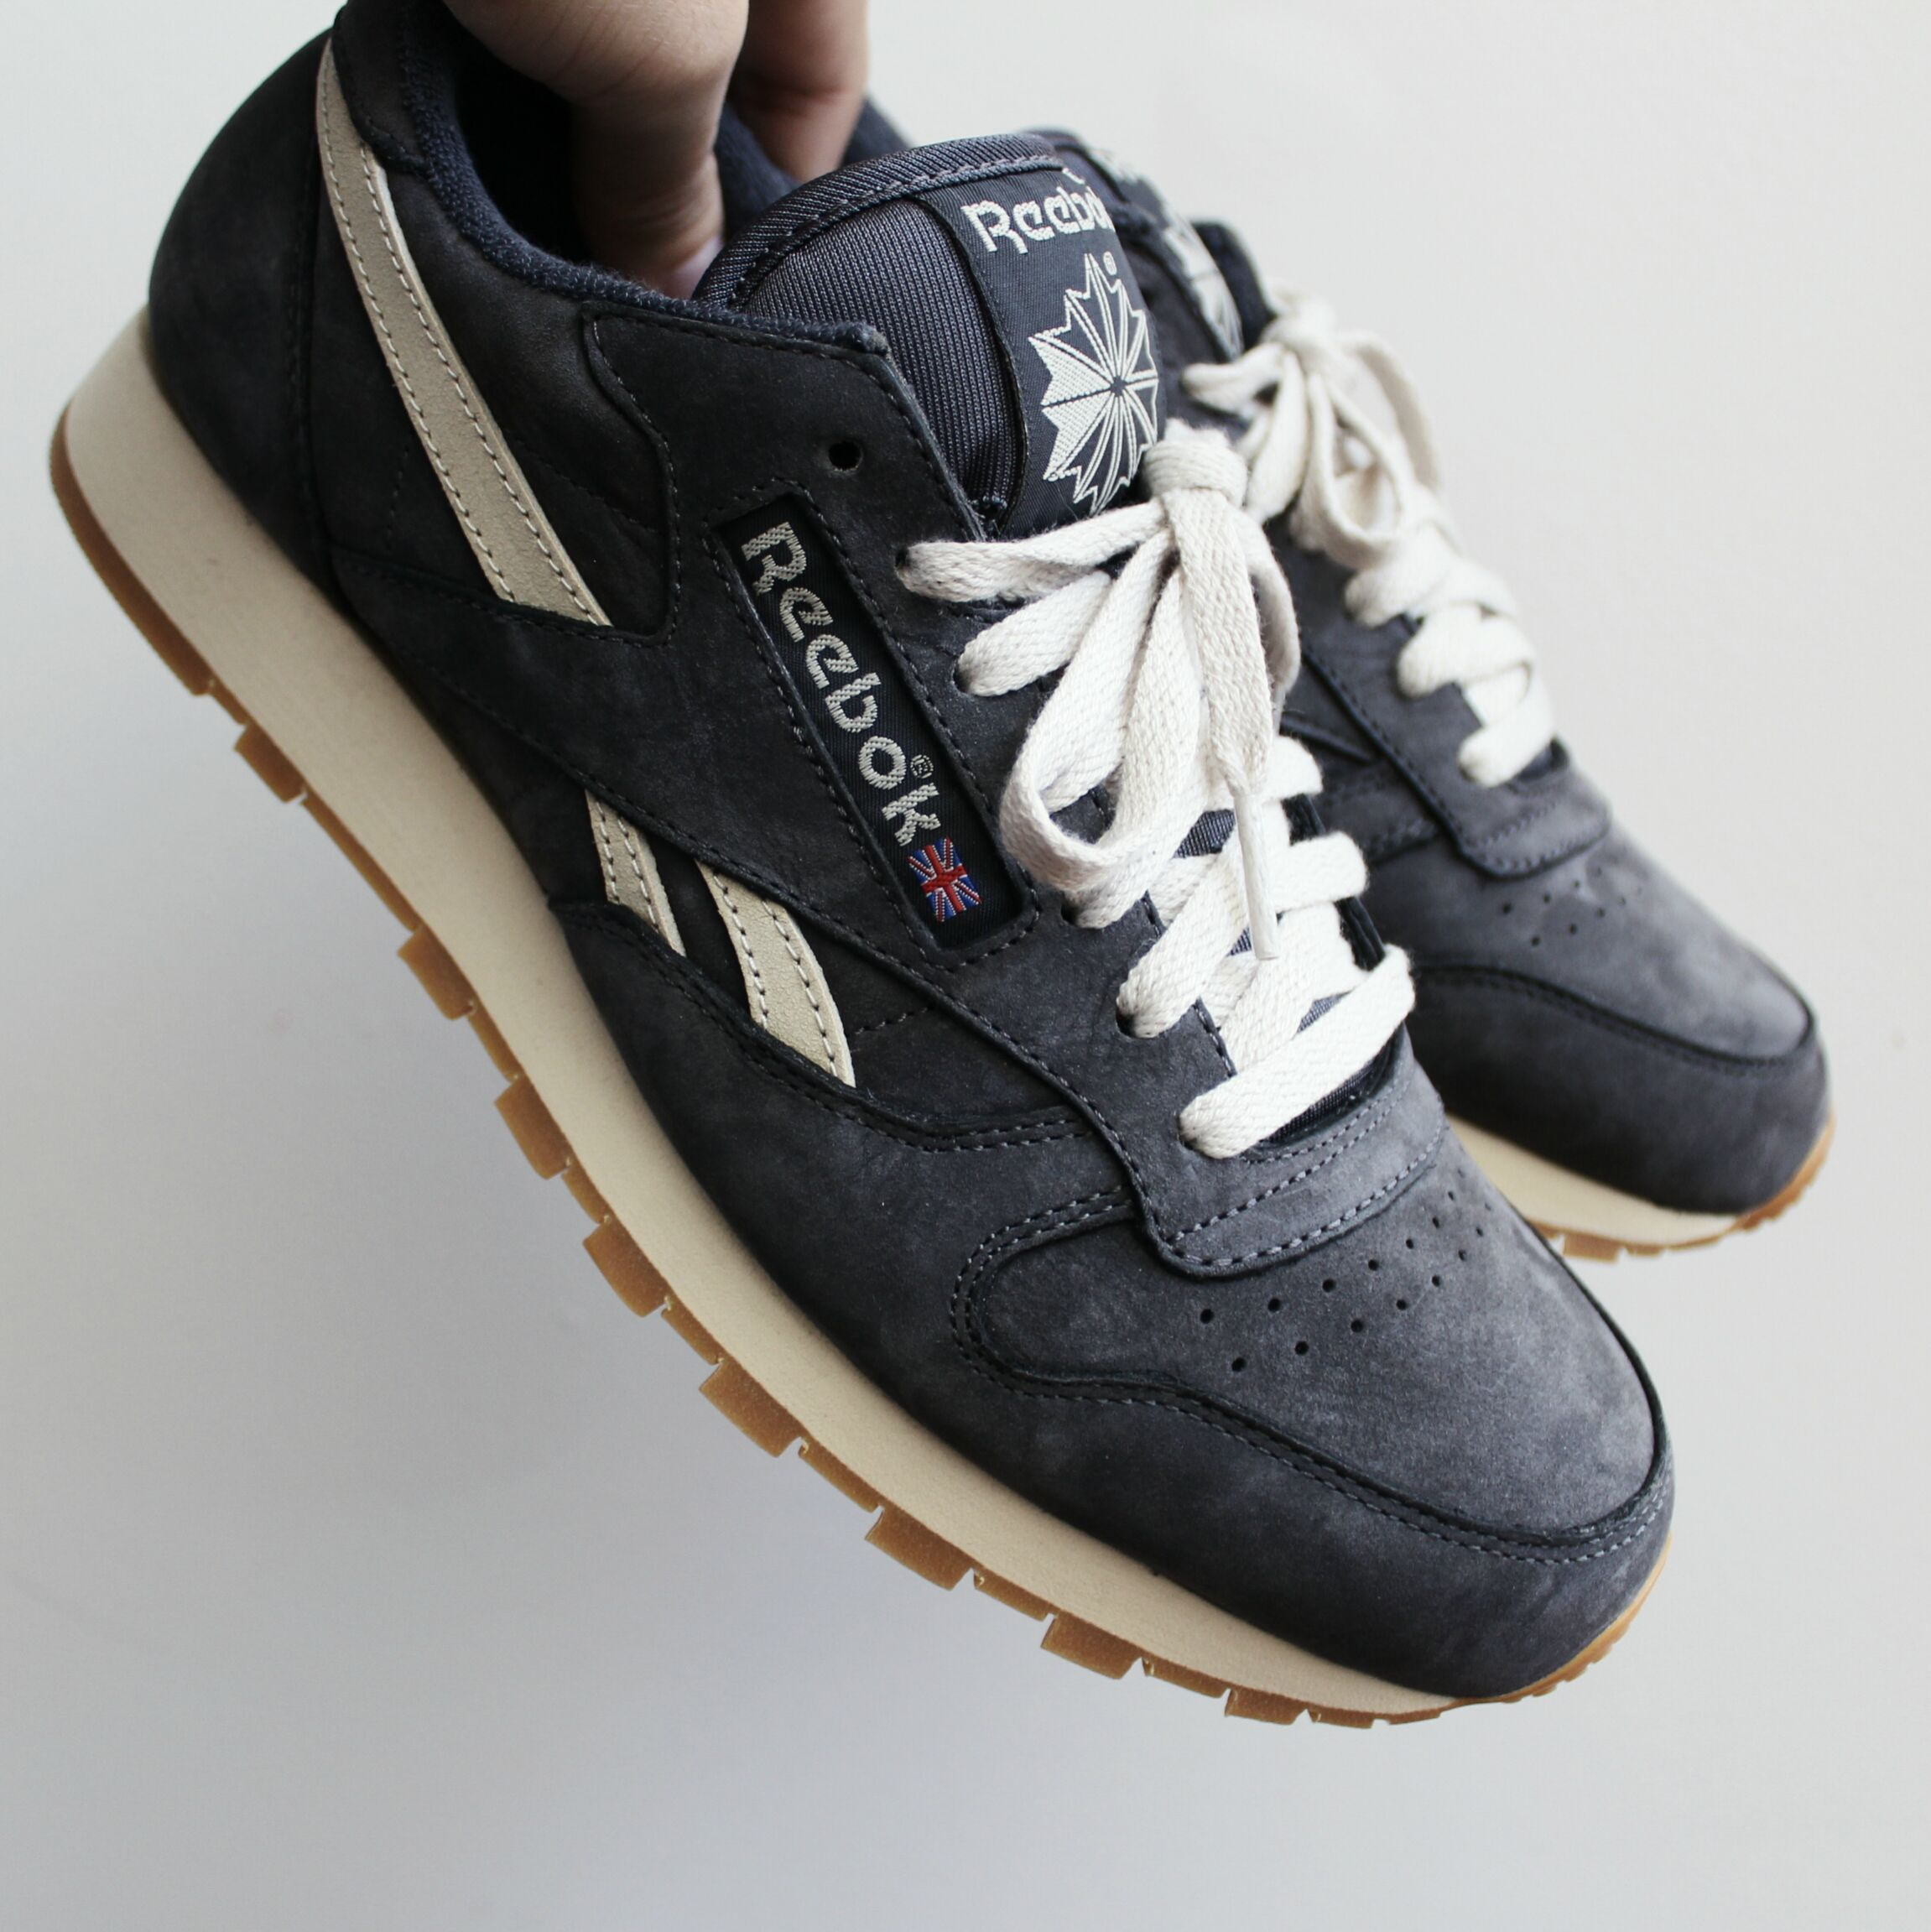 aa5feb90b3f5 Reebok Classic Leather Vintage Retro Suede (J93612) Tags  sneakers ...